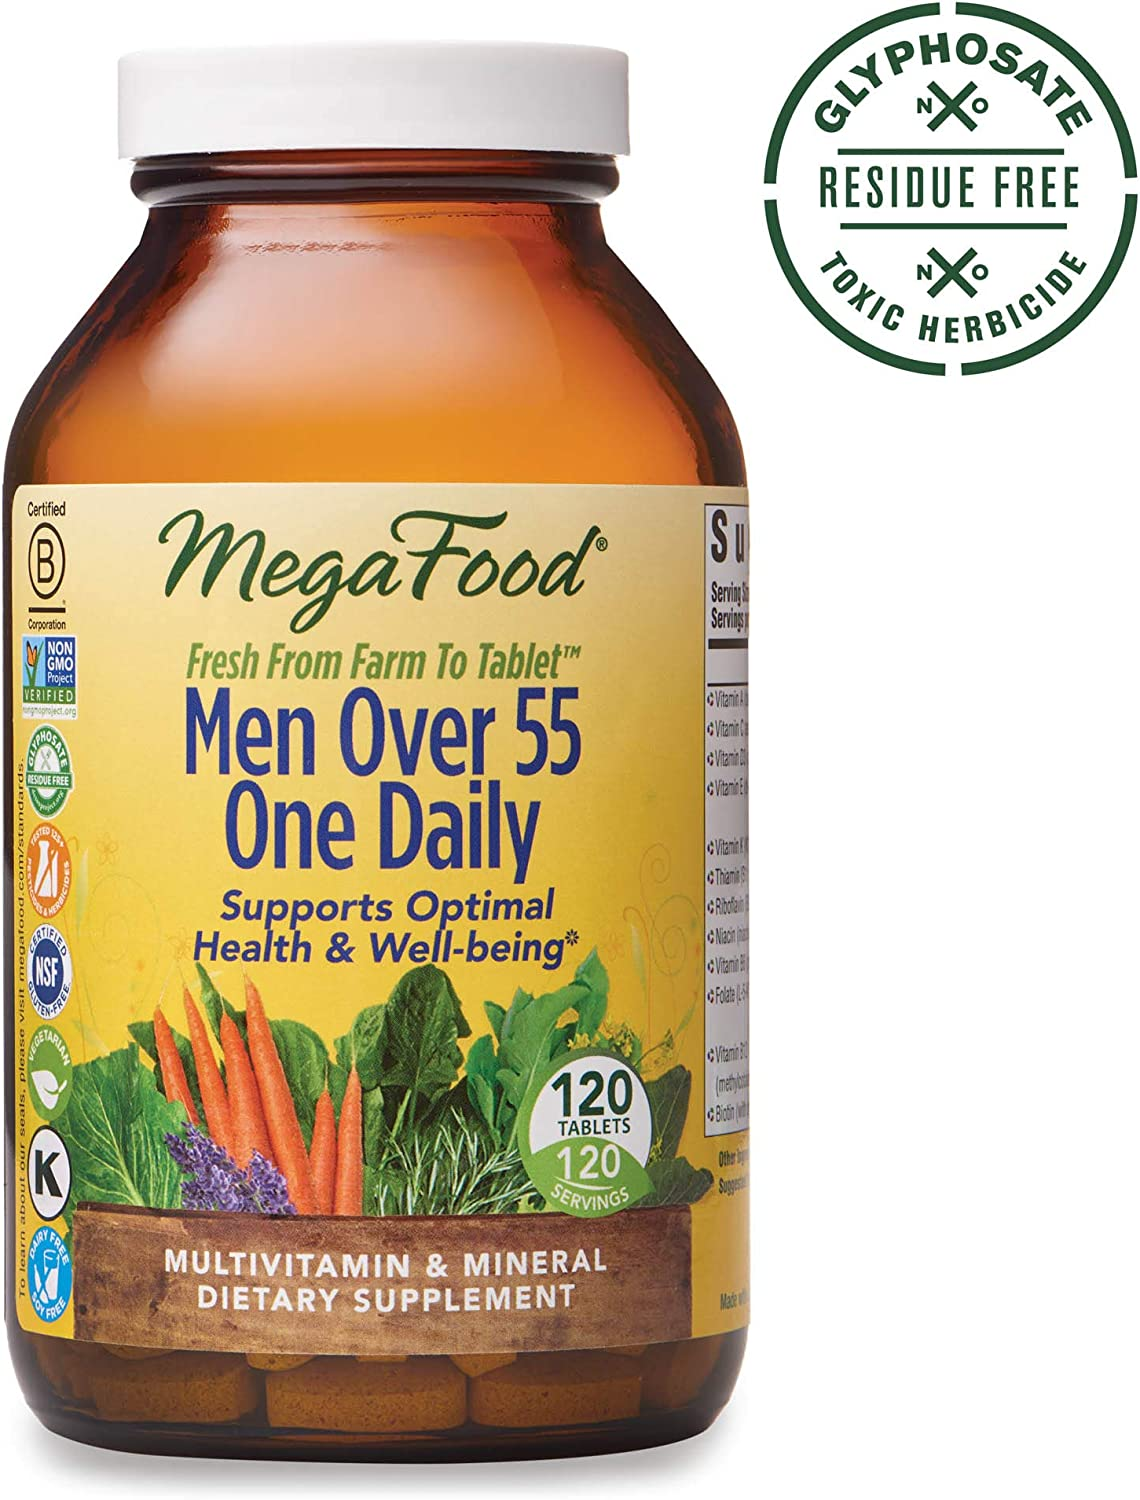 MegaFood, Men Over 55 One Daily, Supports Optimal Health and Wellbeing, Multivitamin and Mineral Dietary Supplement, Vegetarian, 120 tablets 120 servings